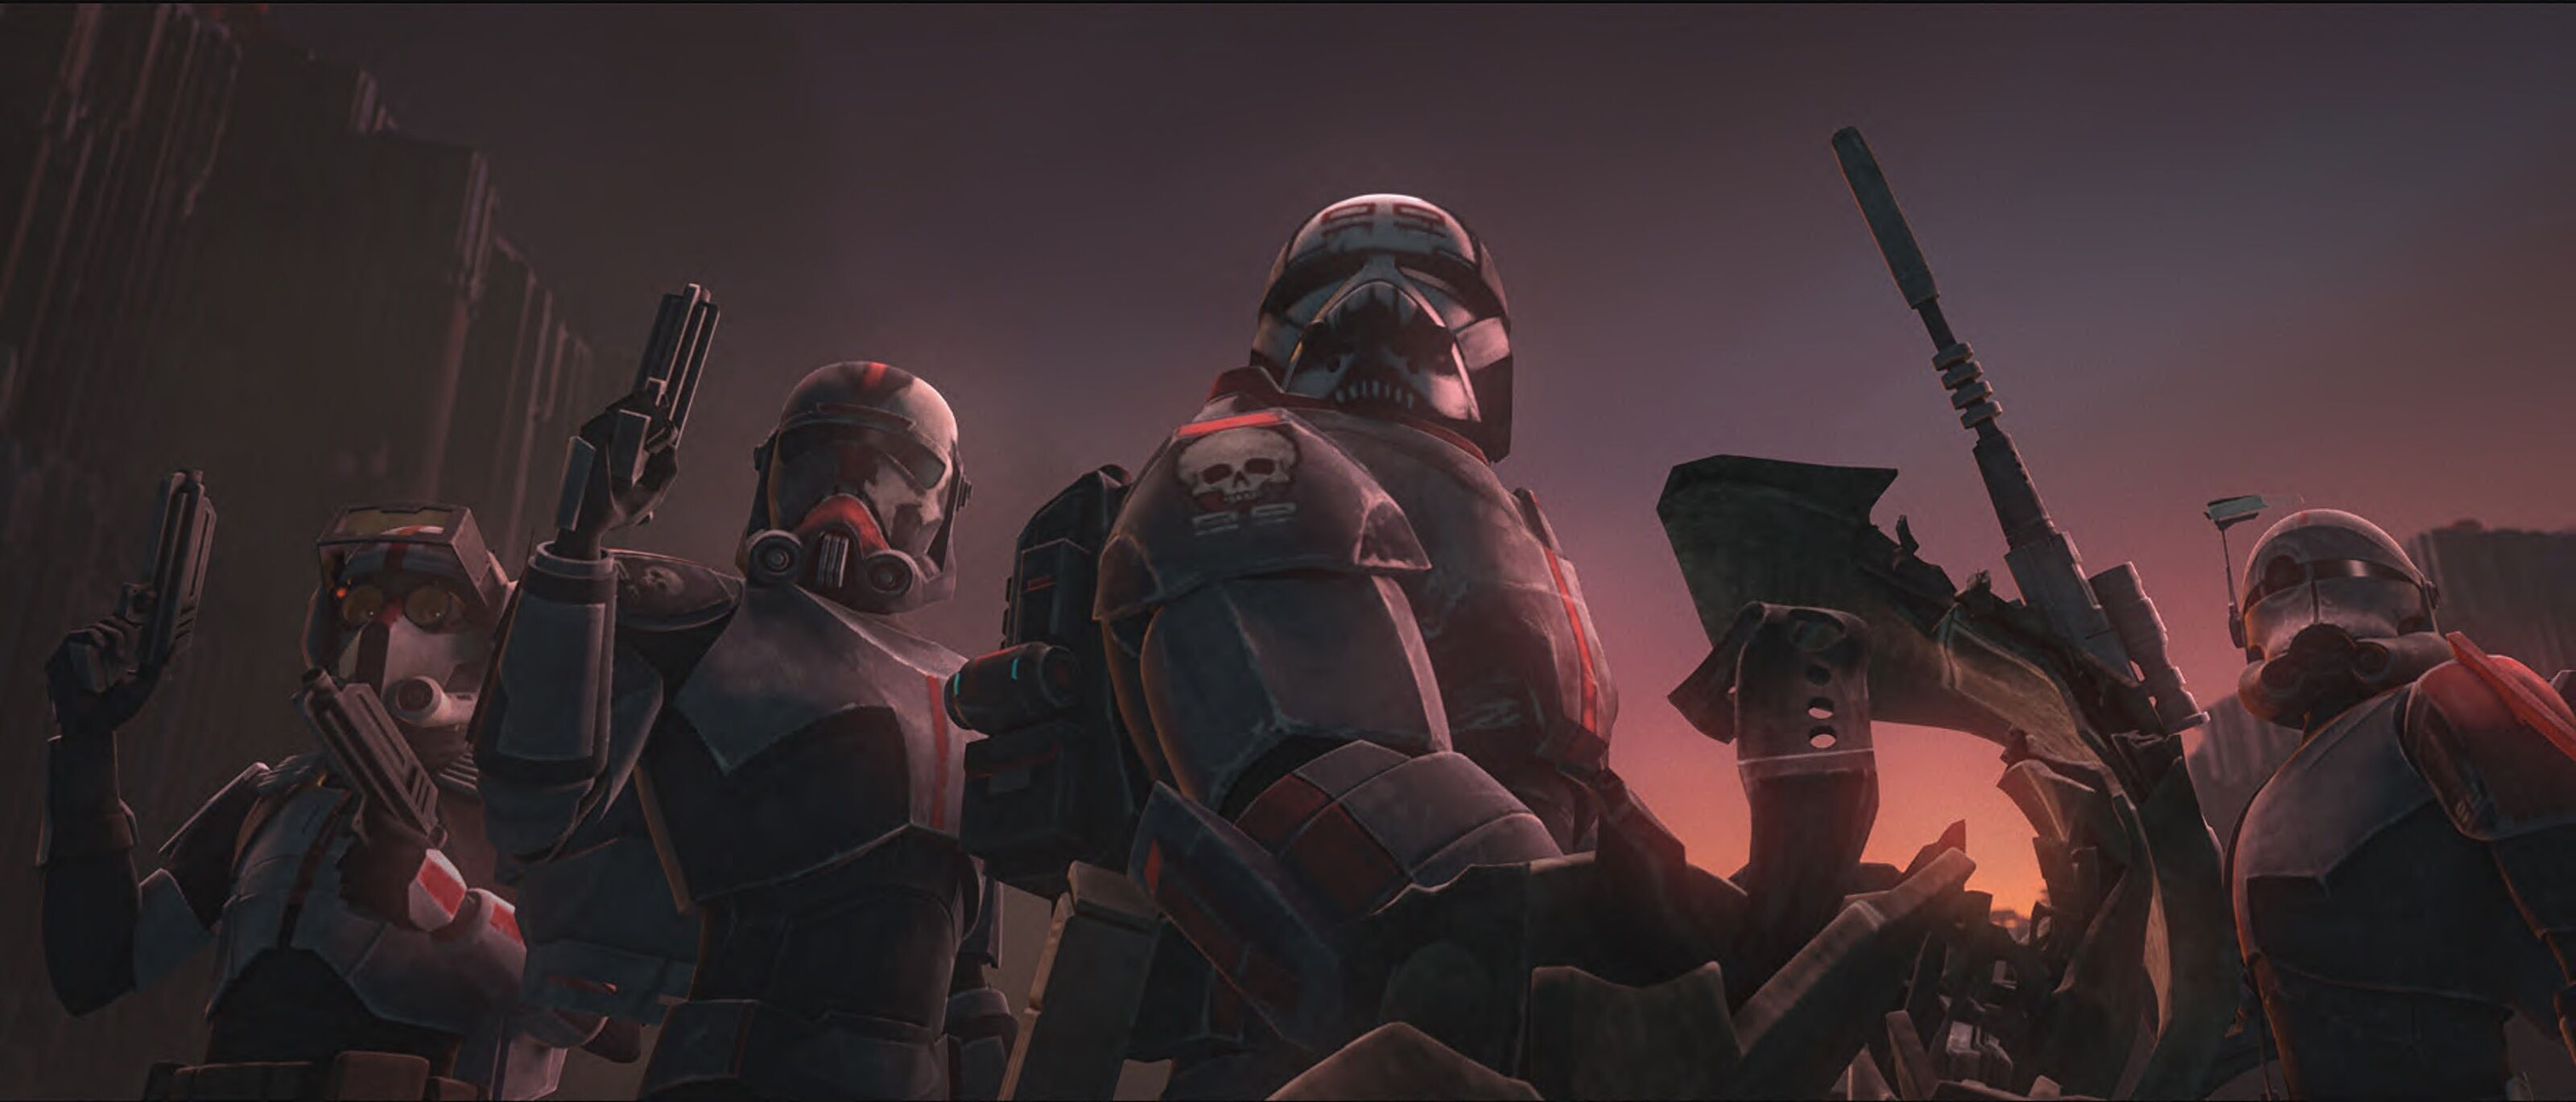 Teaser for Star Wars: The Clone Wars shows what's next for the Bad Batch